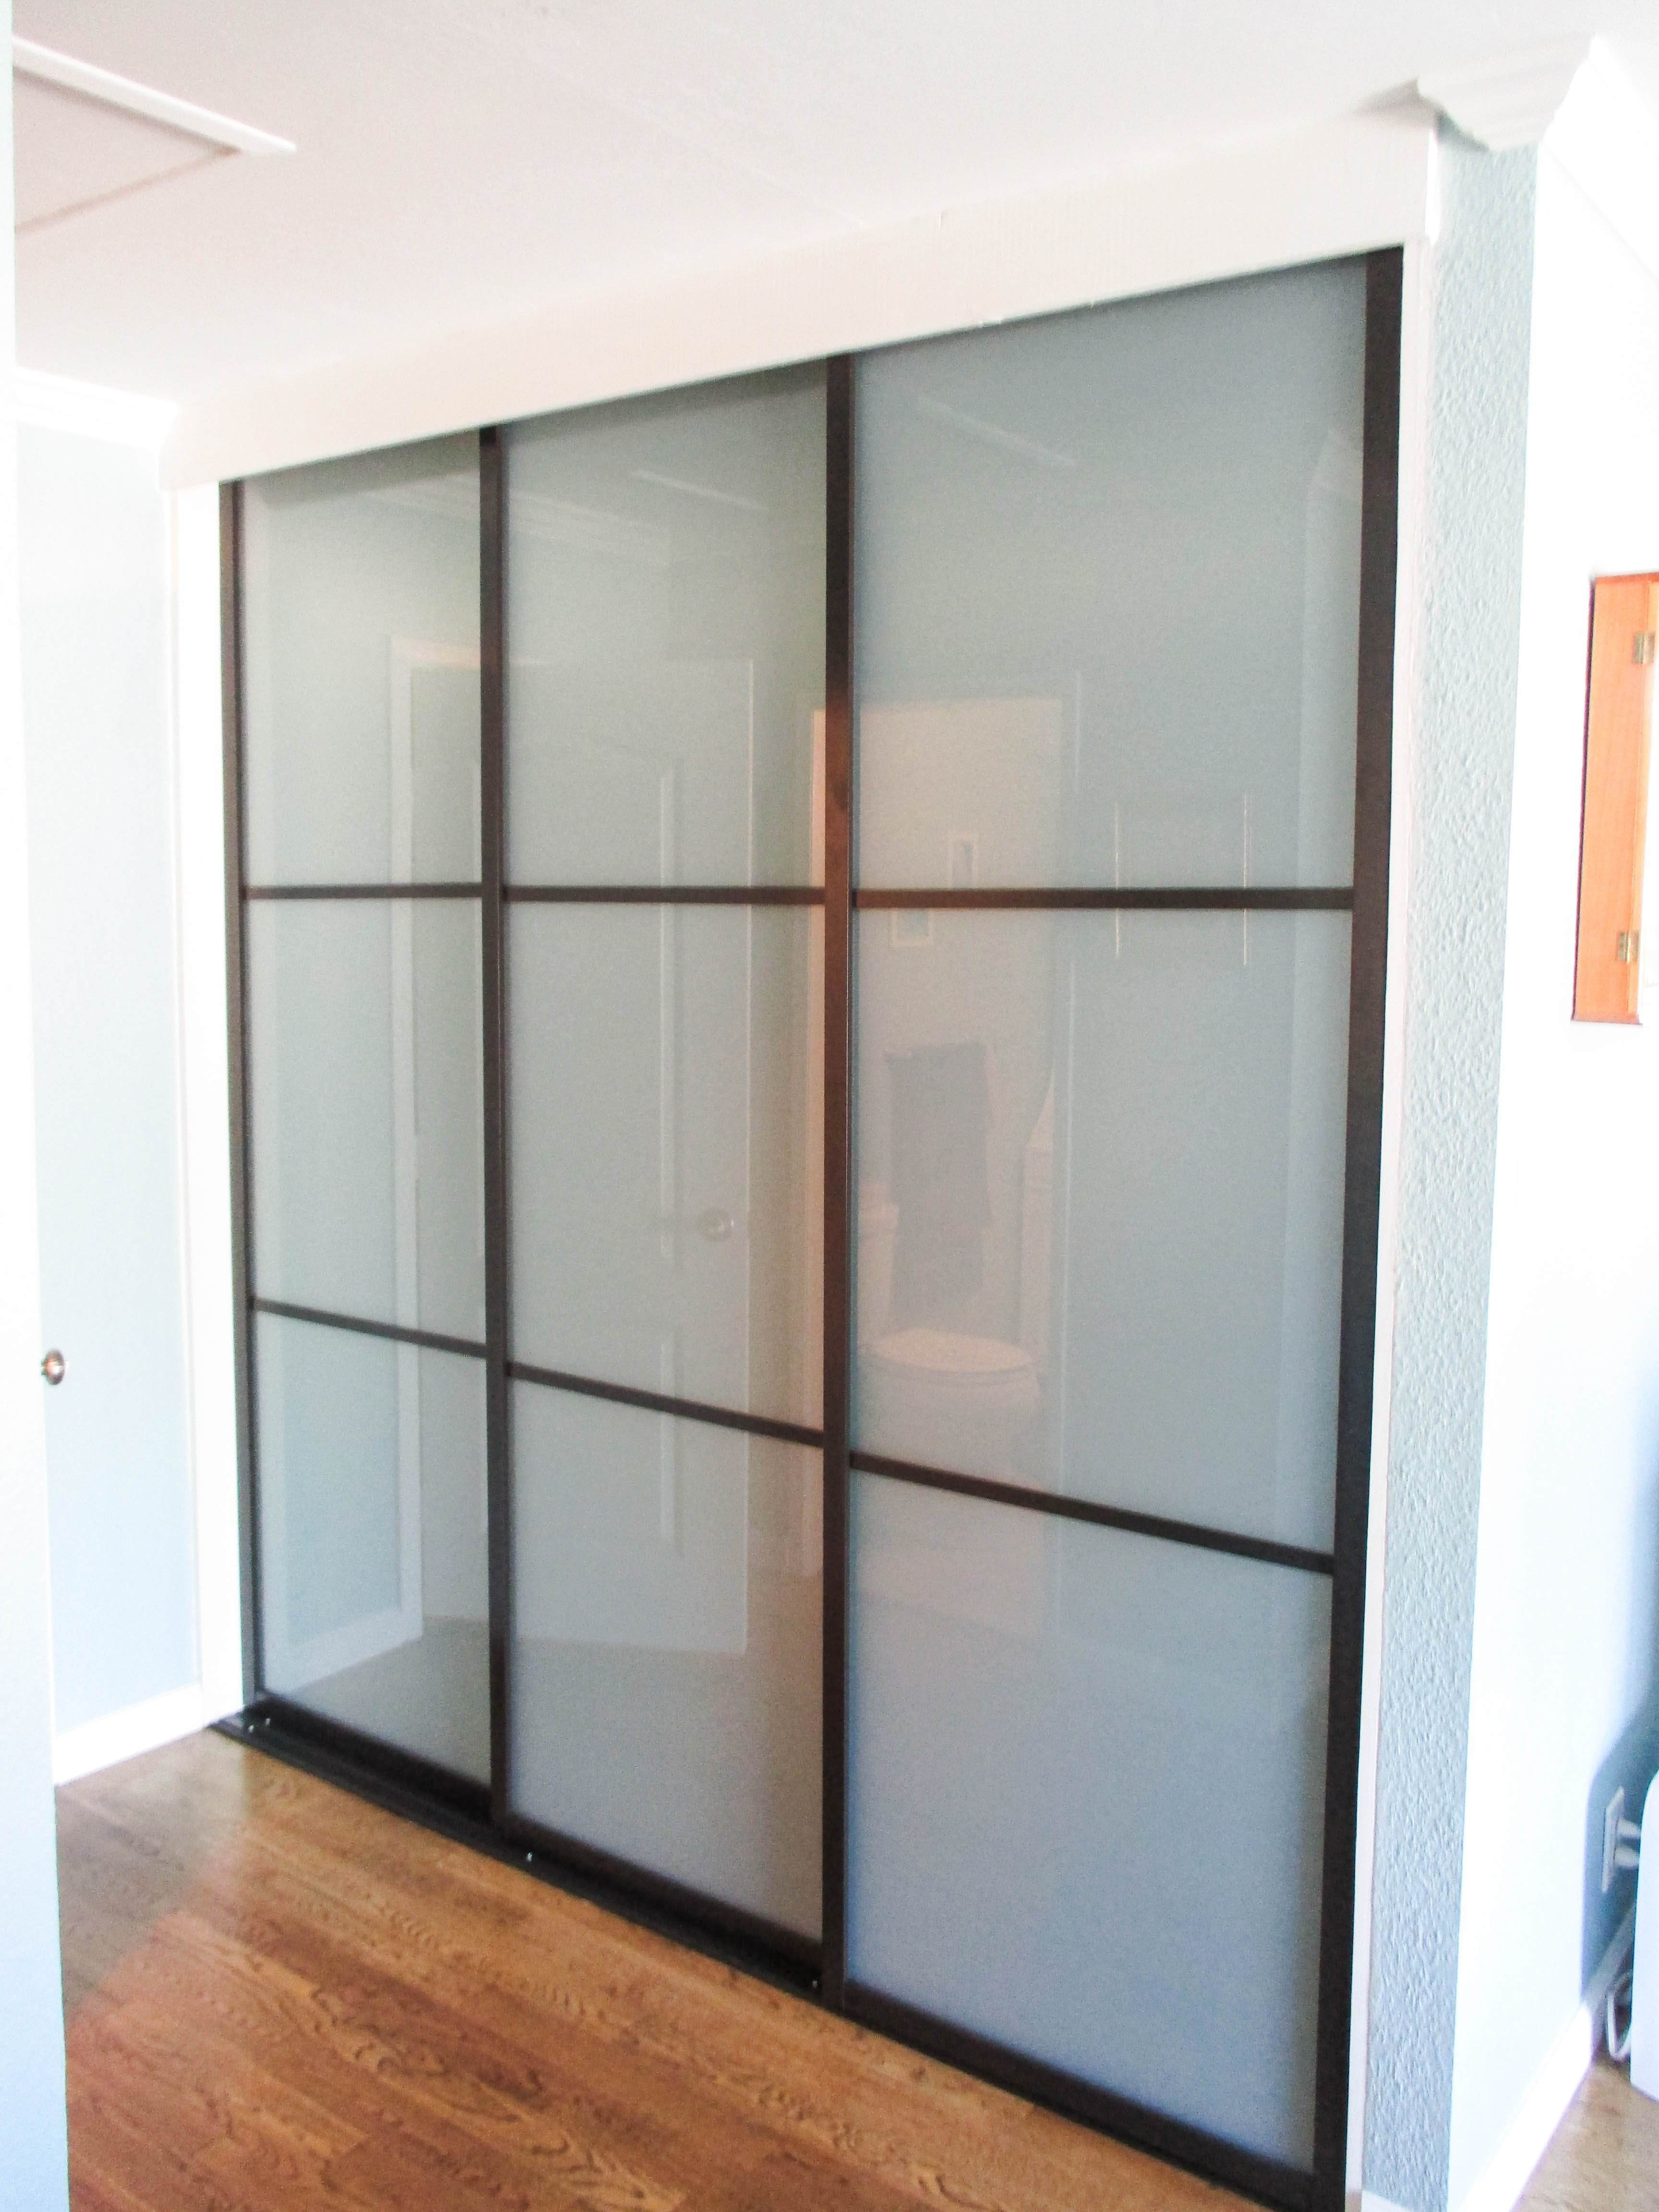 Our Team Installed This 3 Panel 3 Track Java Framed Closet Door